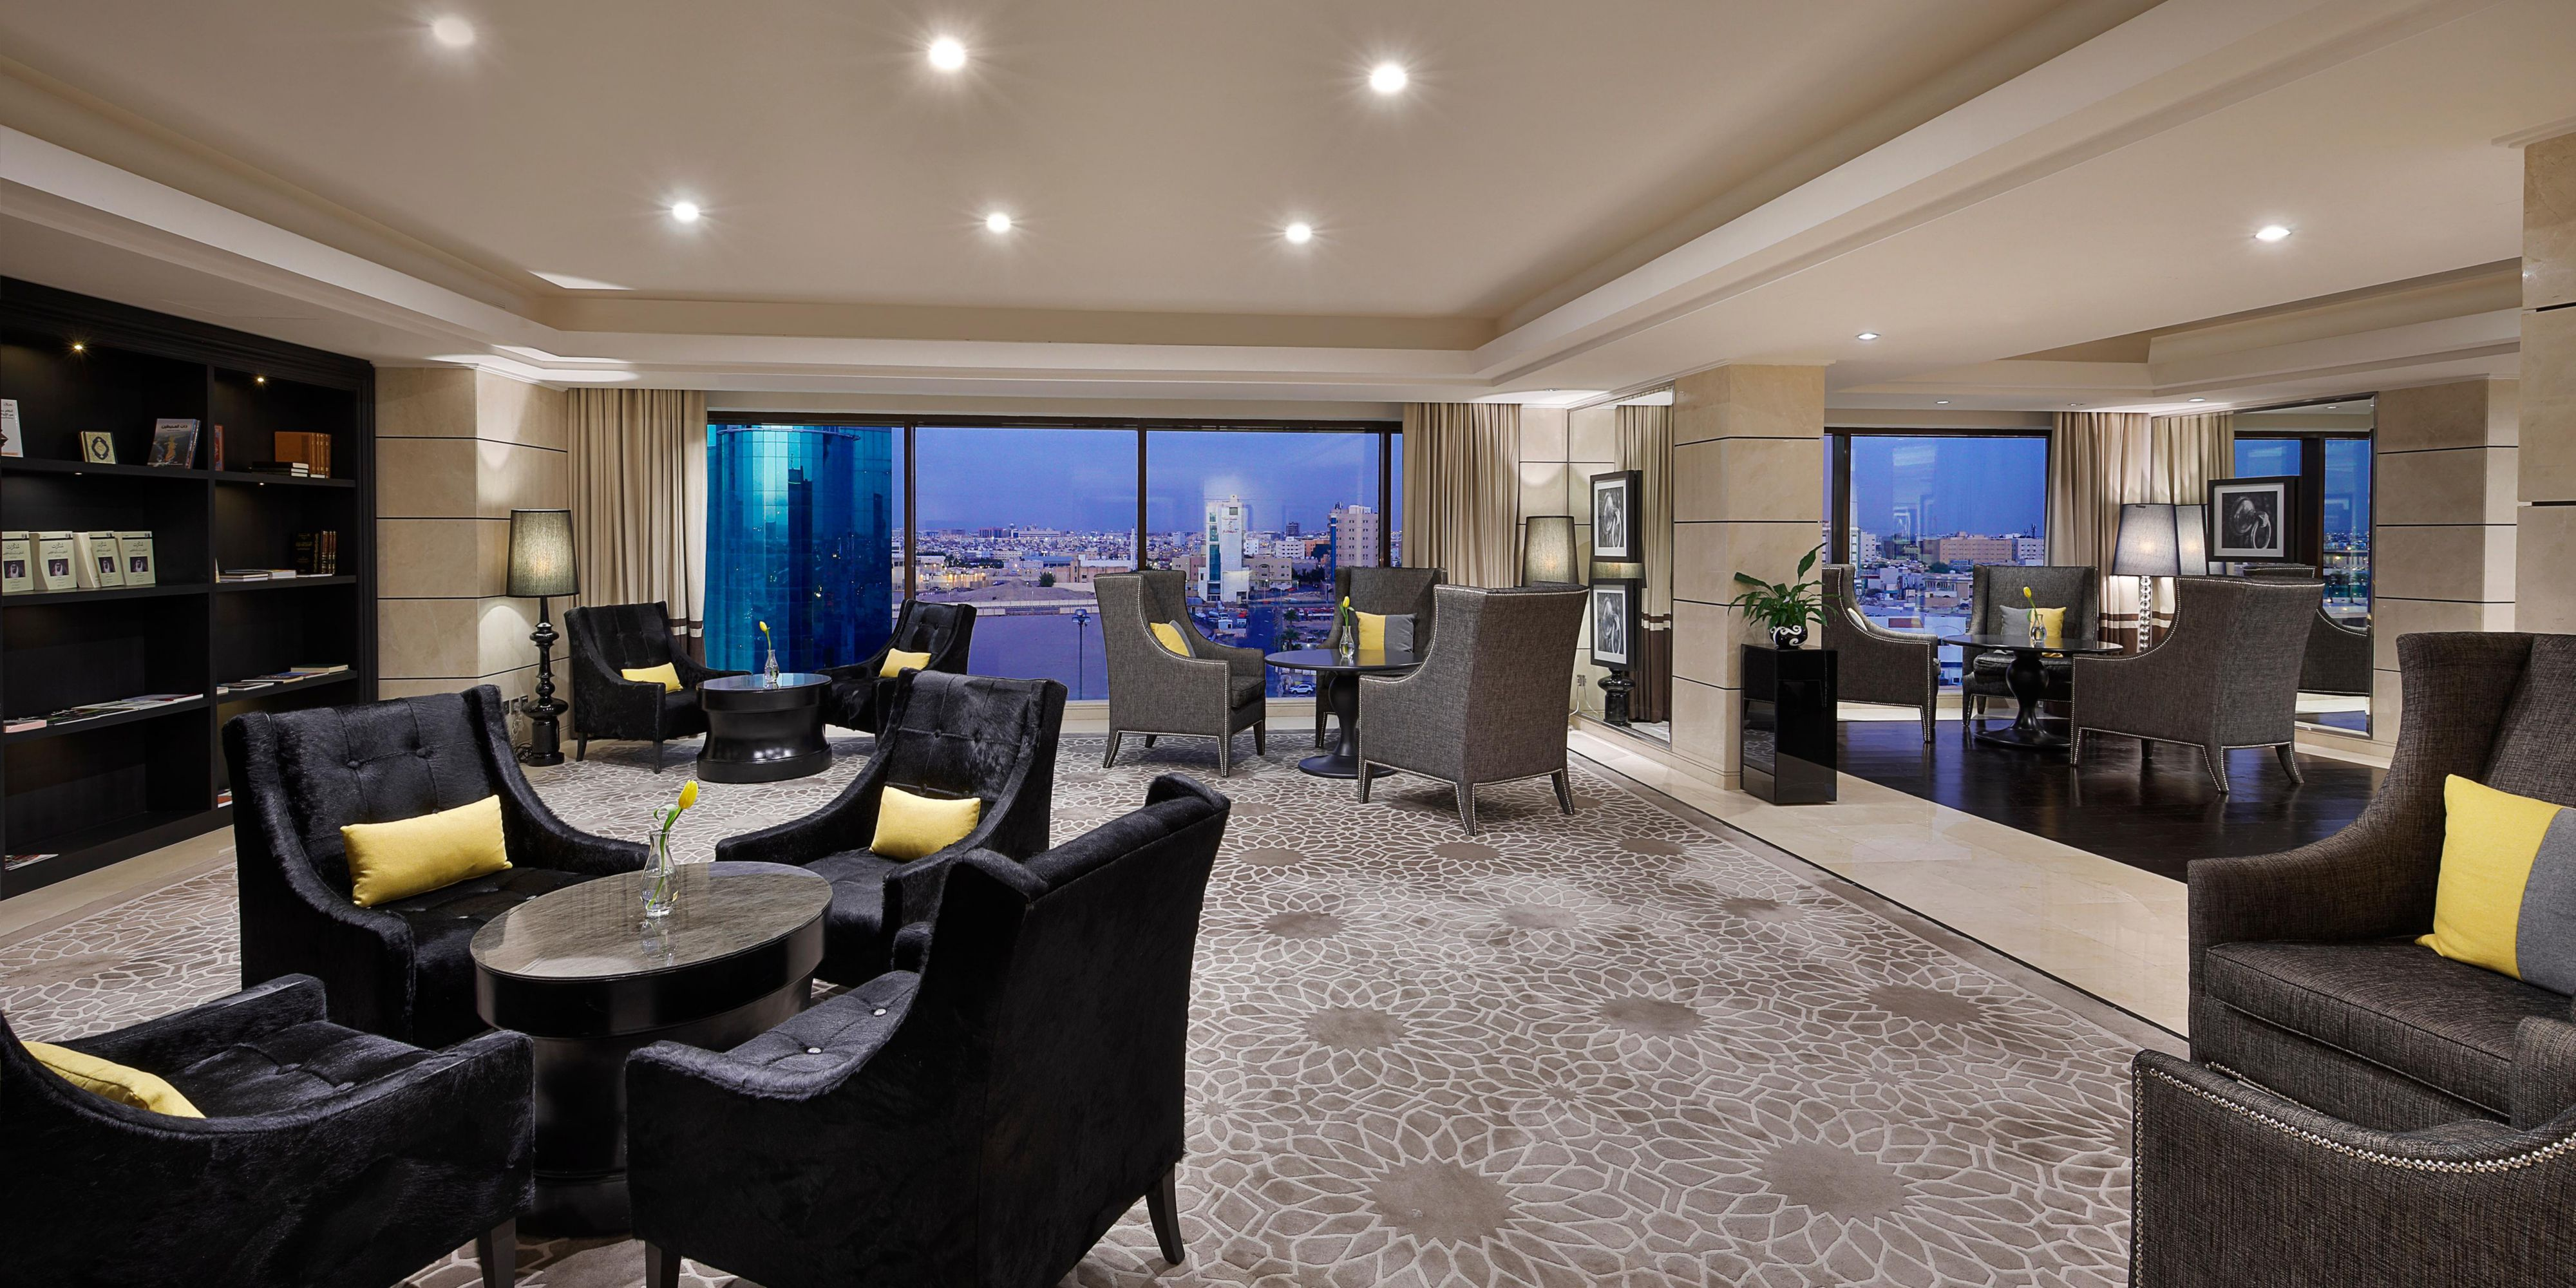 Executive and prestigious Lounge for business meetings